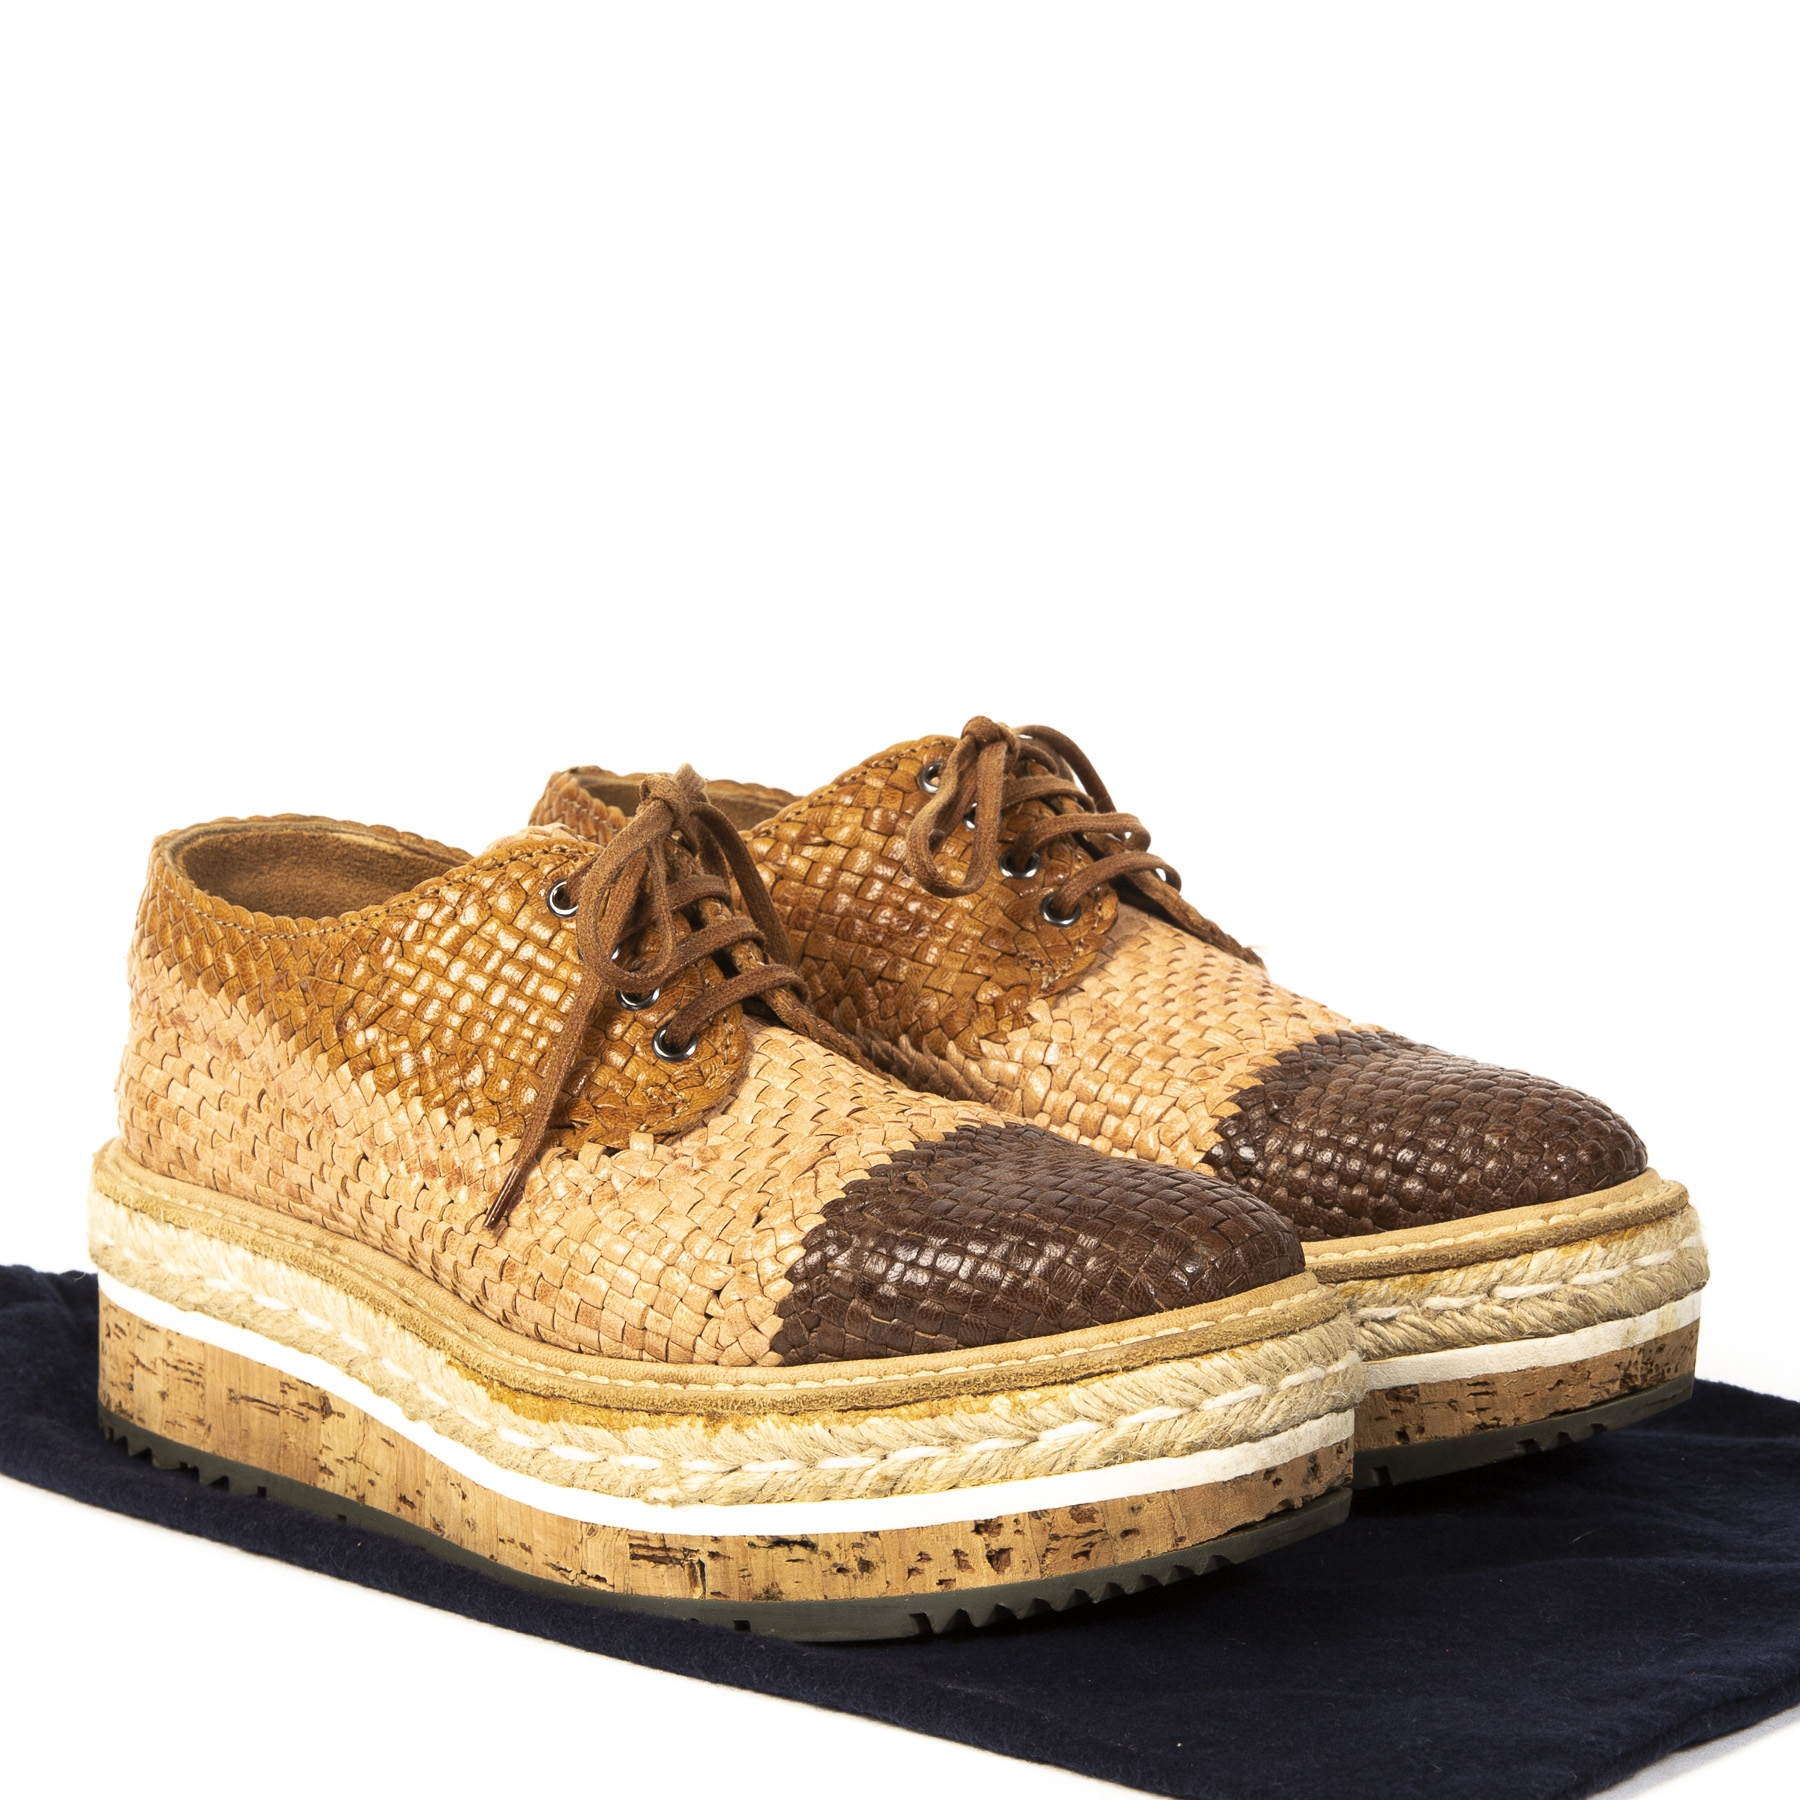 Authentic second-hand vintage Prada Cognac Woven Flatform Espadrilles buy online webshop LabelLOV